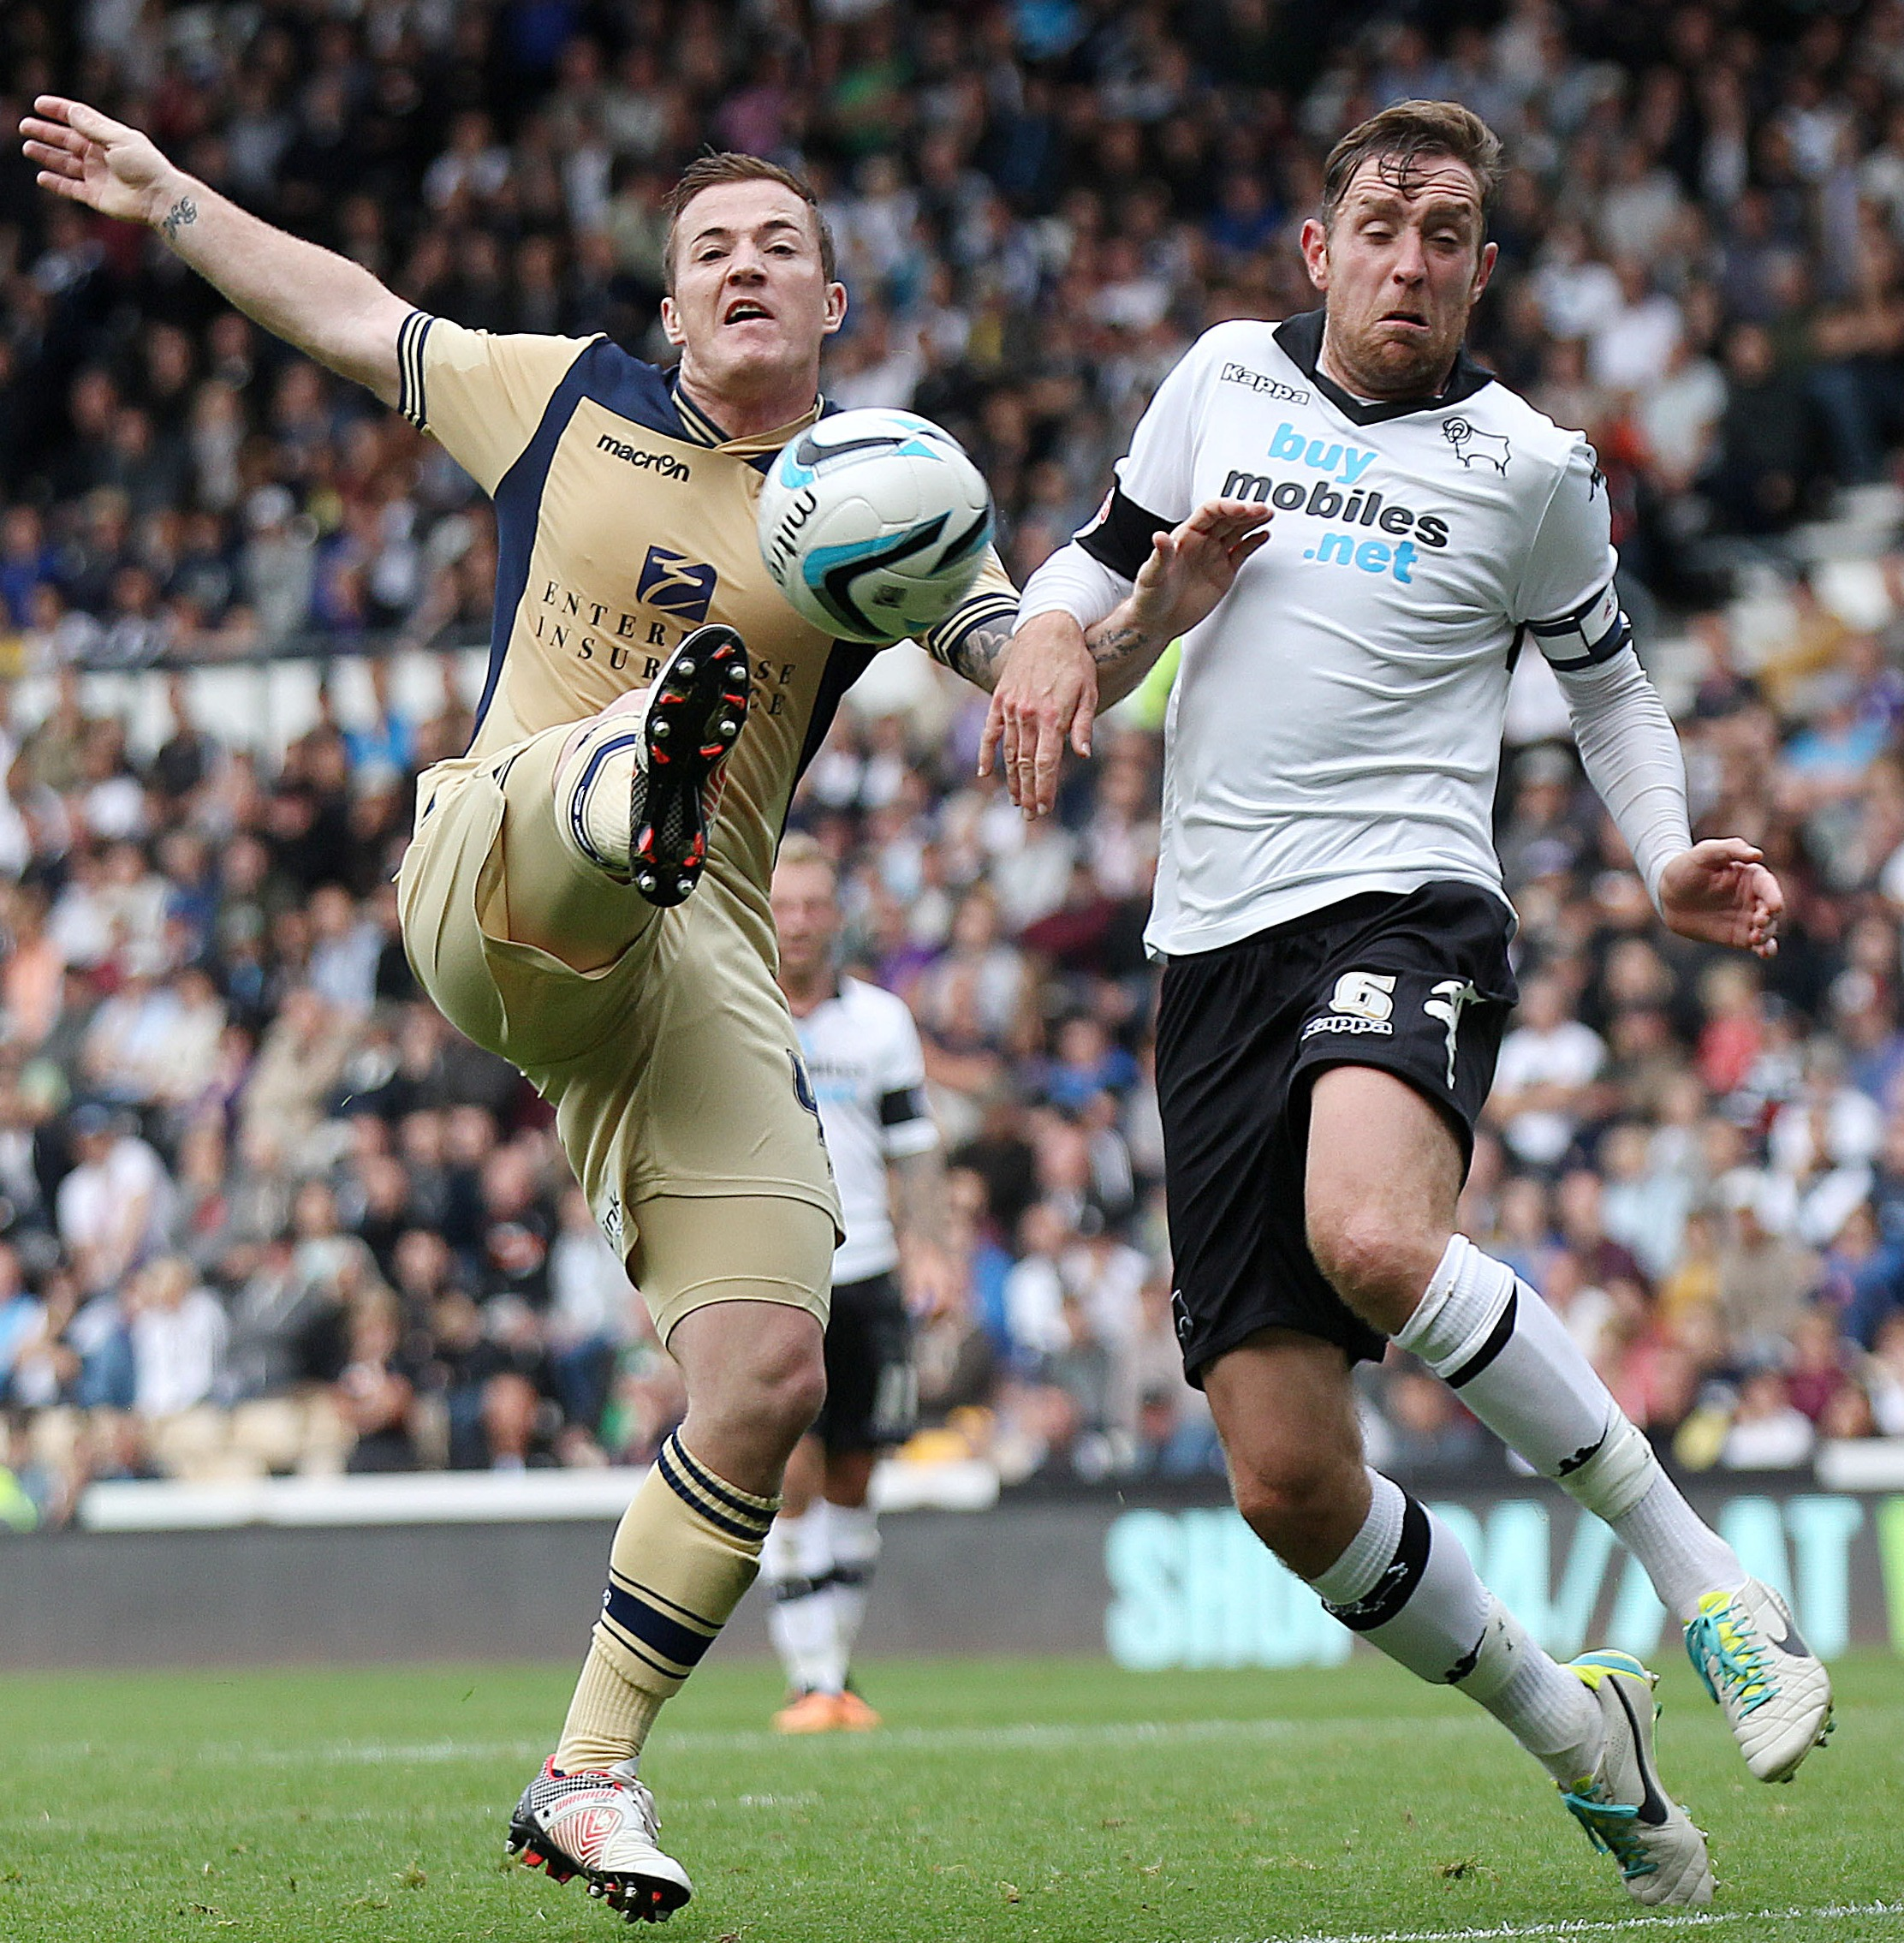 Richard Keogh, right of picture, could return for Derby